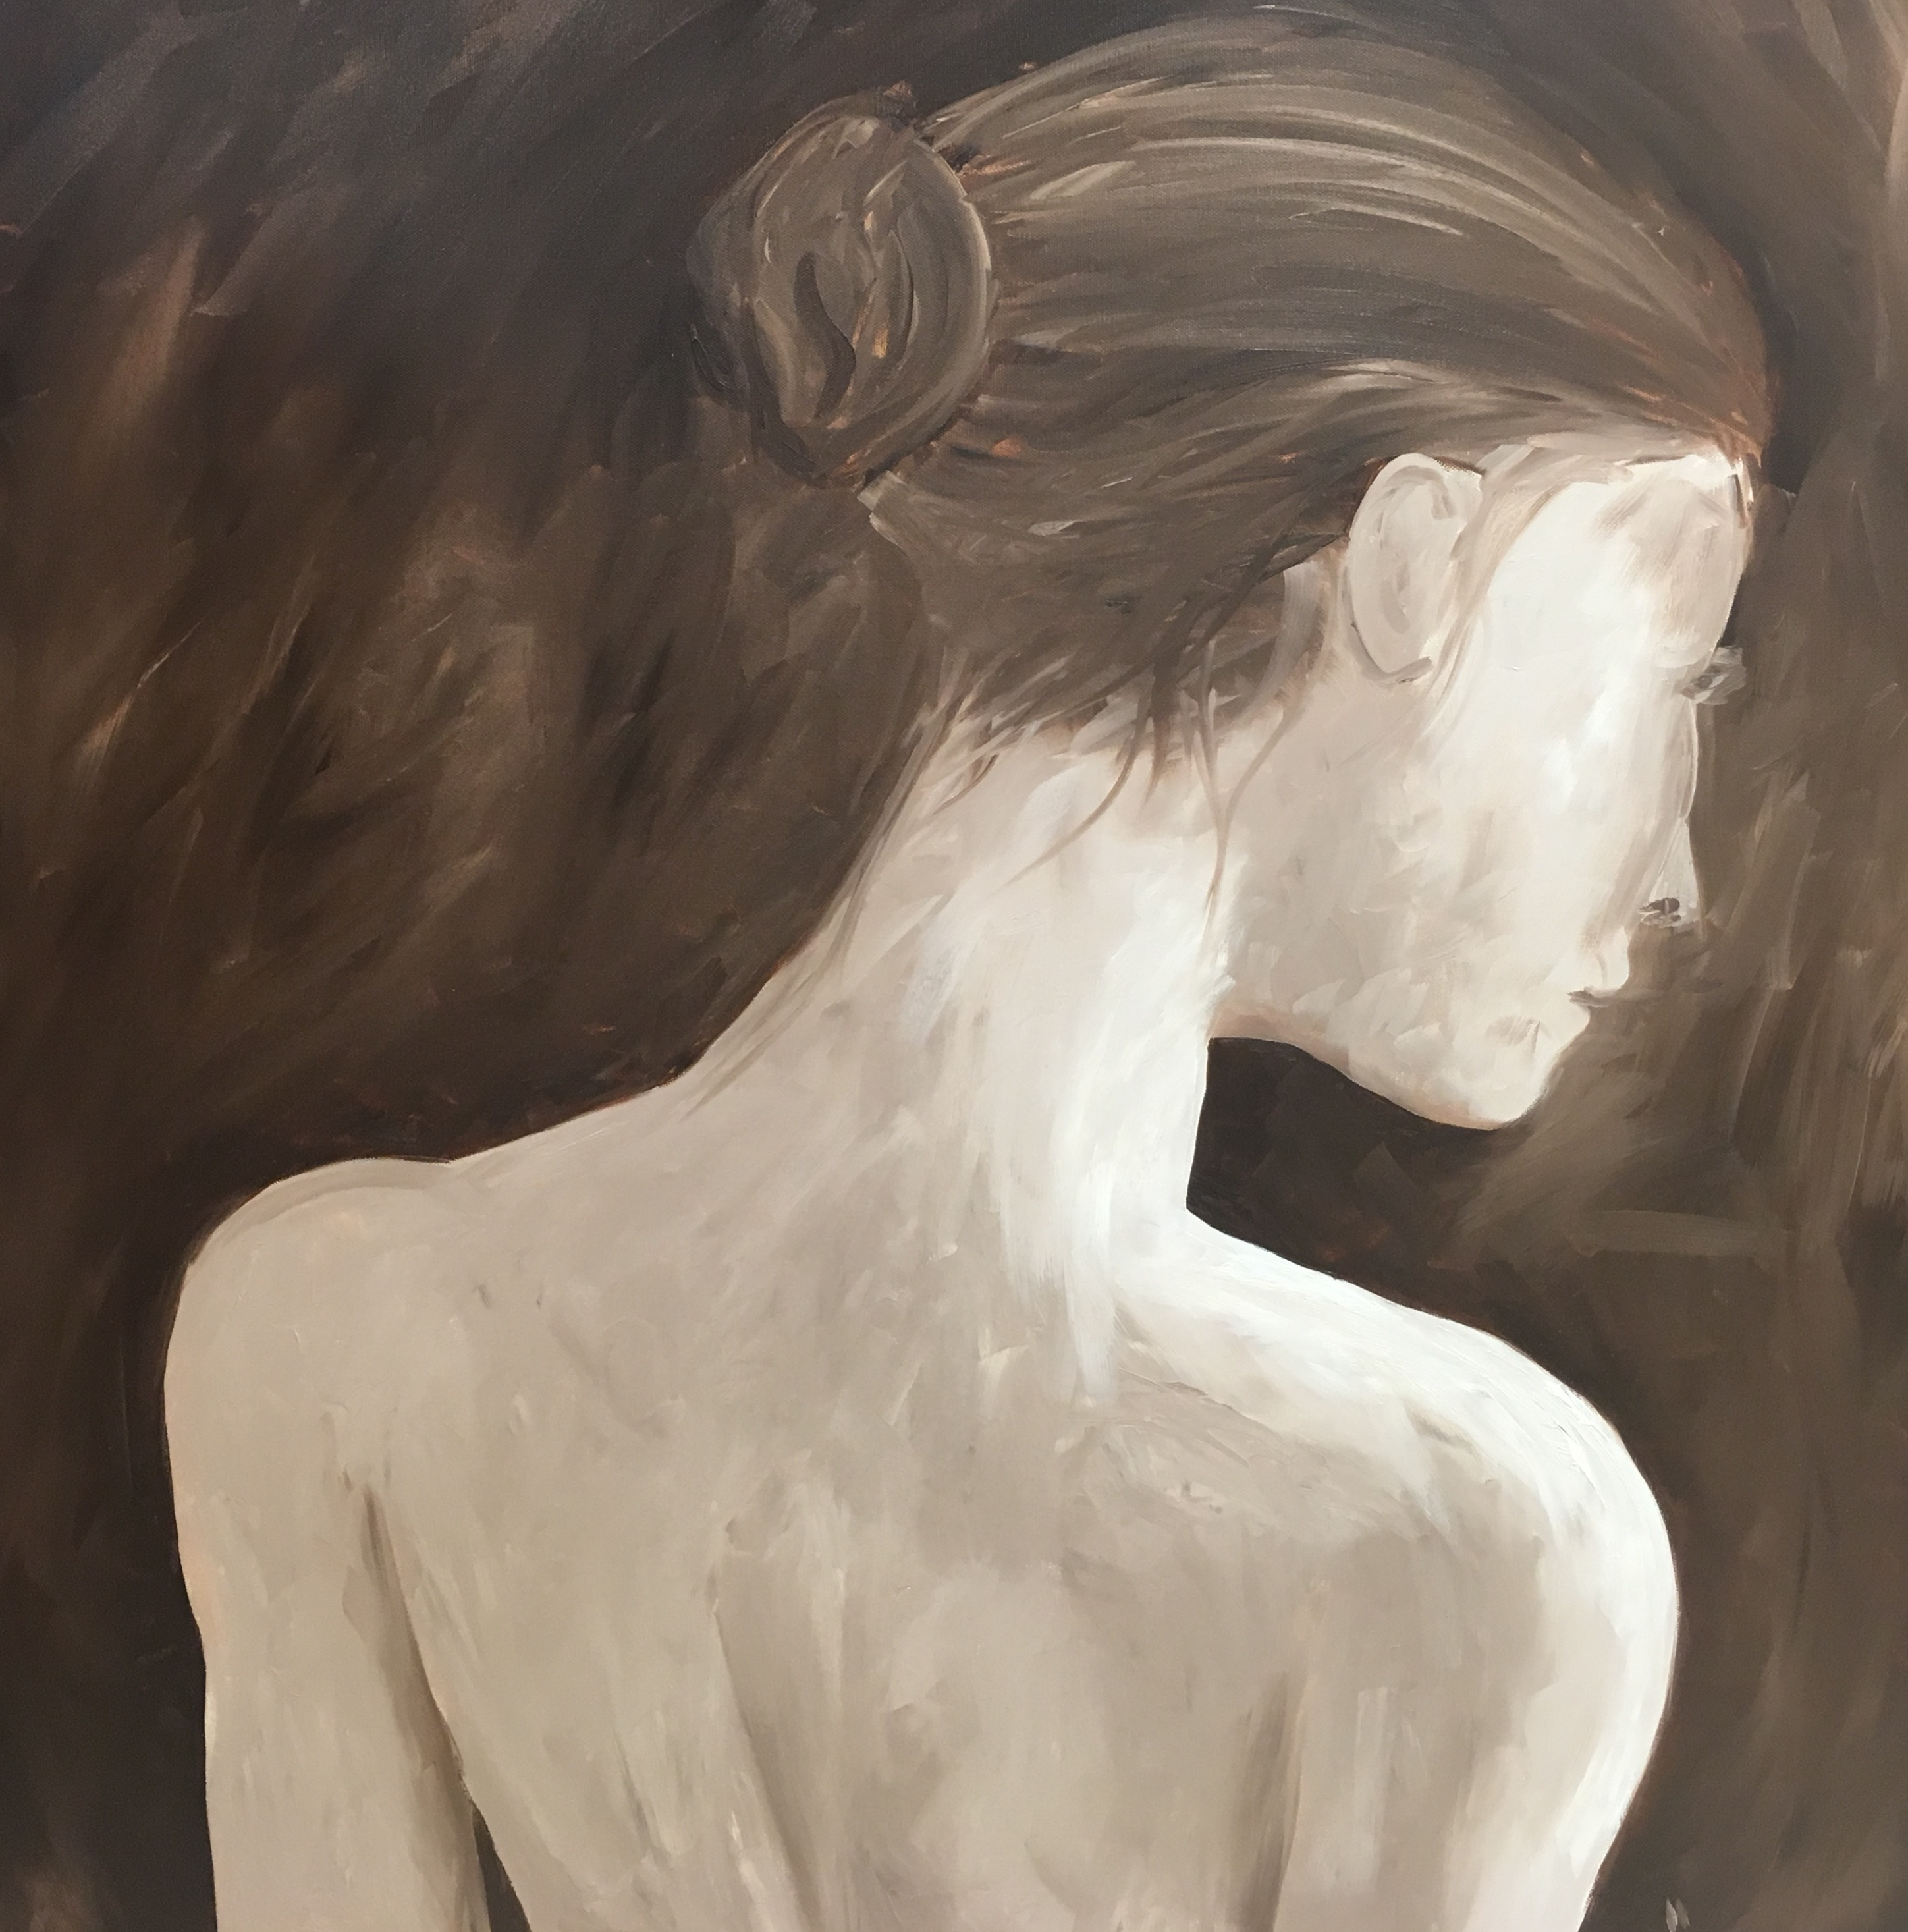 Contemplation From Behind artwork by Hanz Frederick Messer - art listed for sale on Artplode